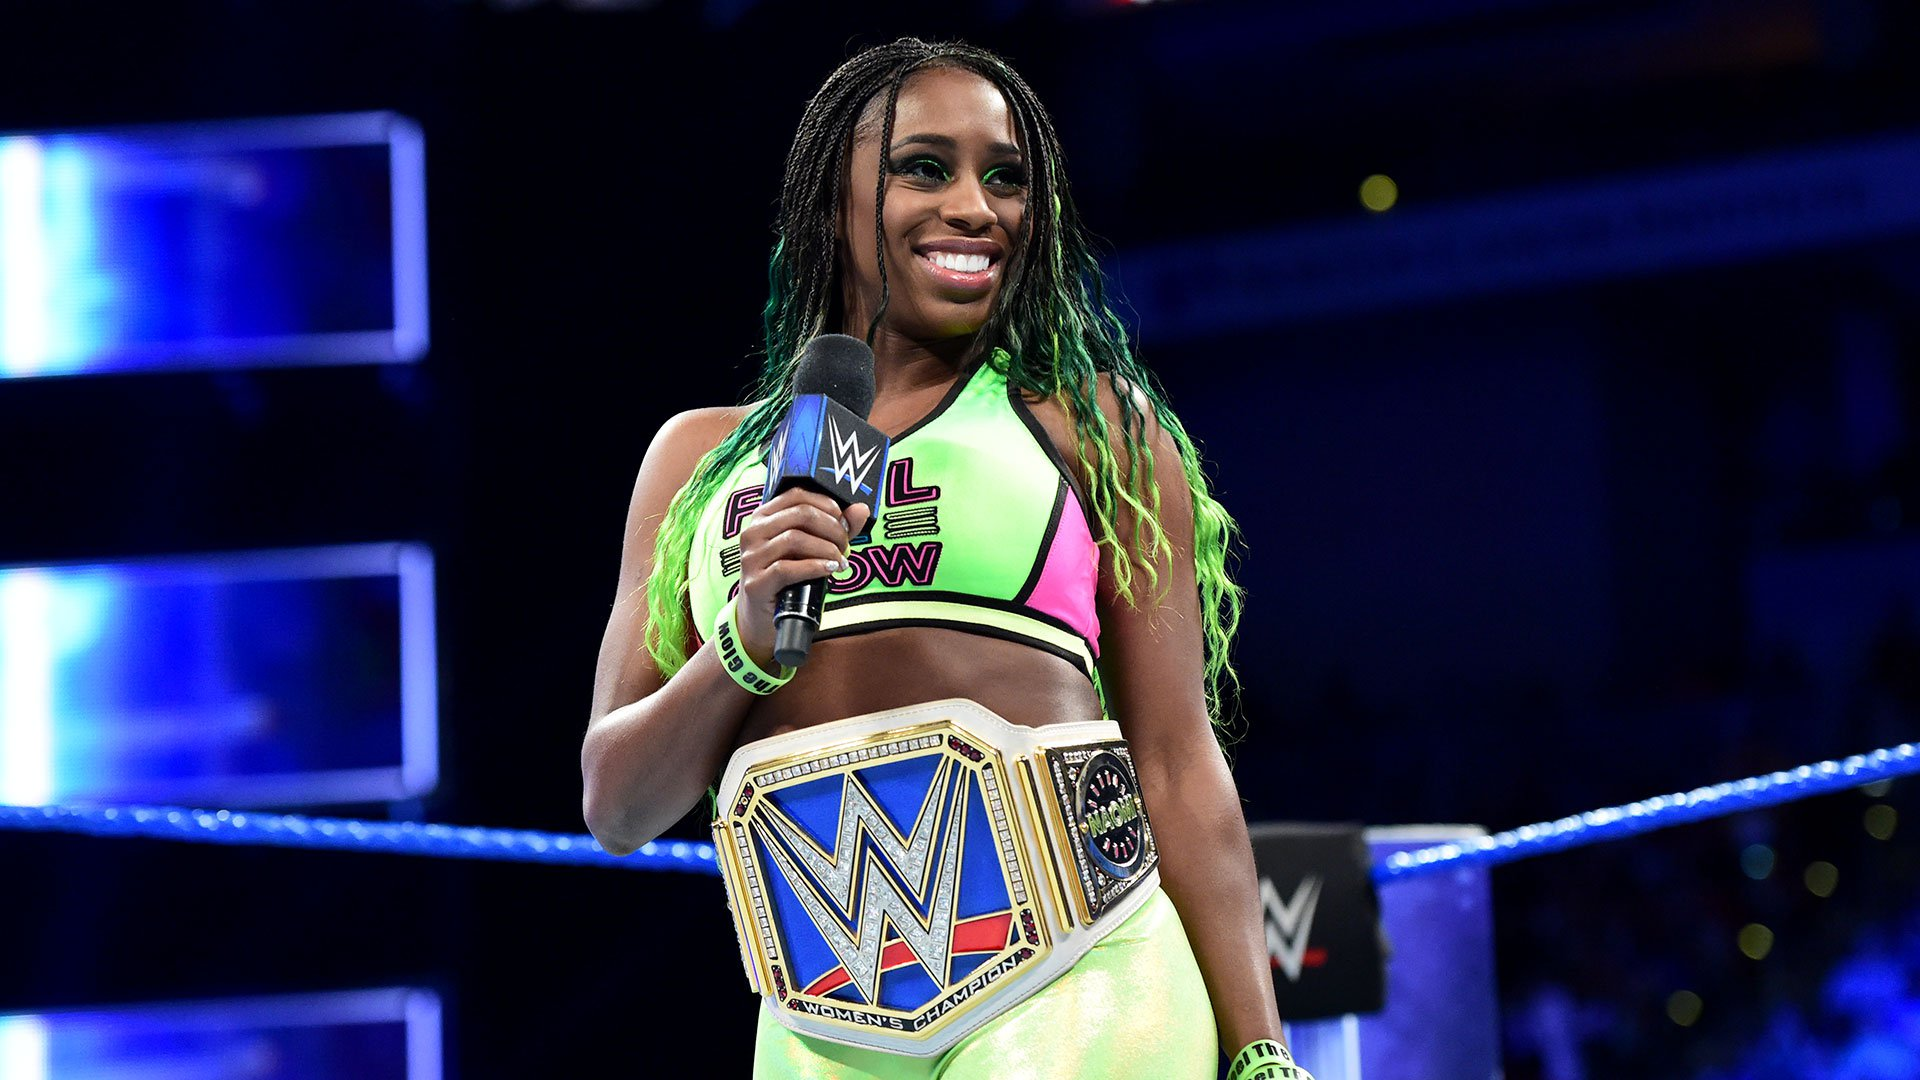 Naomi says she would be happy to face Charlotte one-on-one...